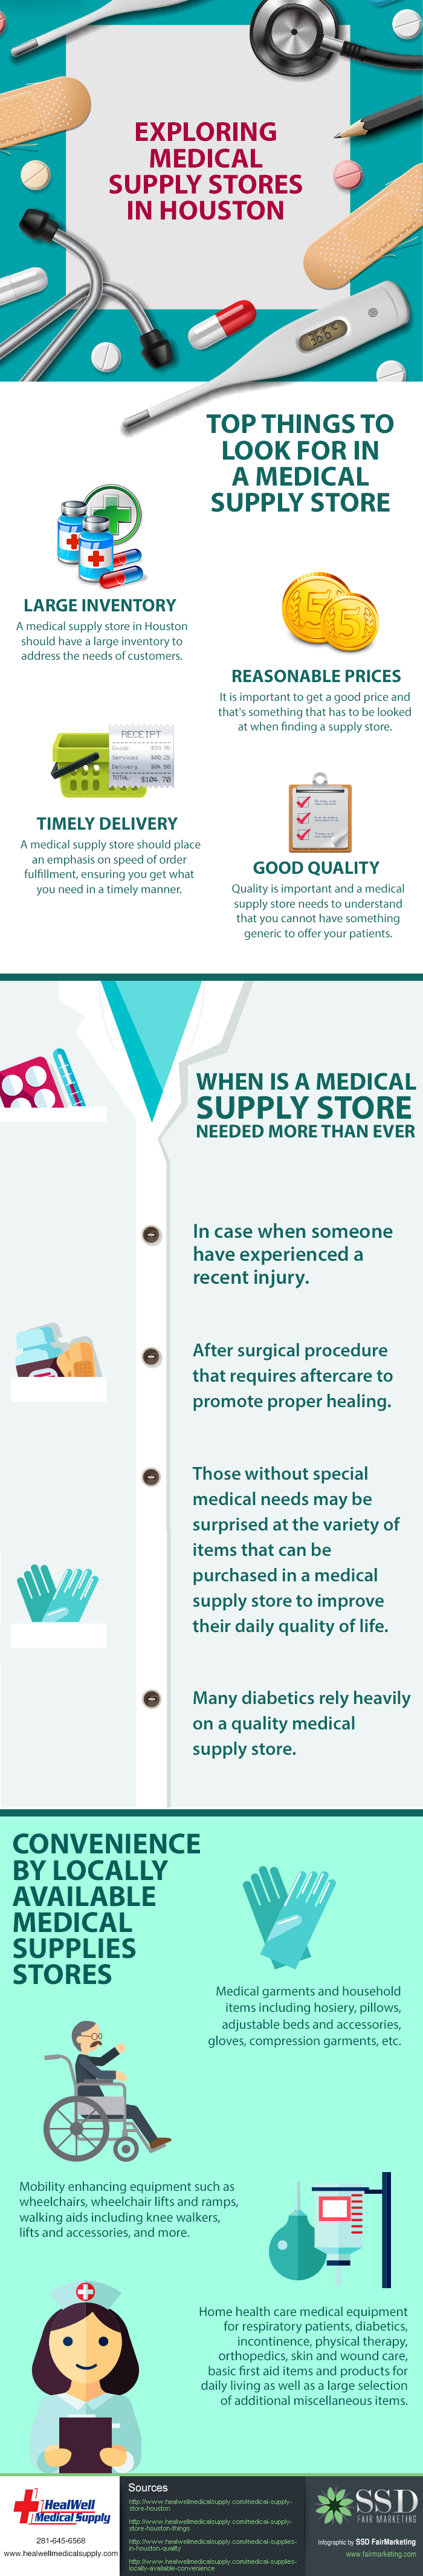 Medical Supply Store Houston Infographic February 2015